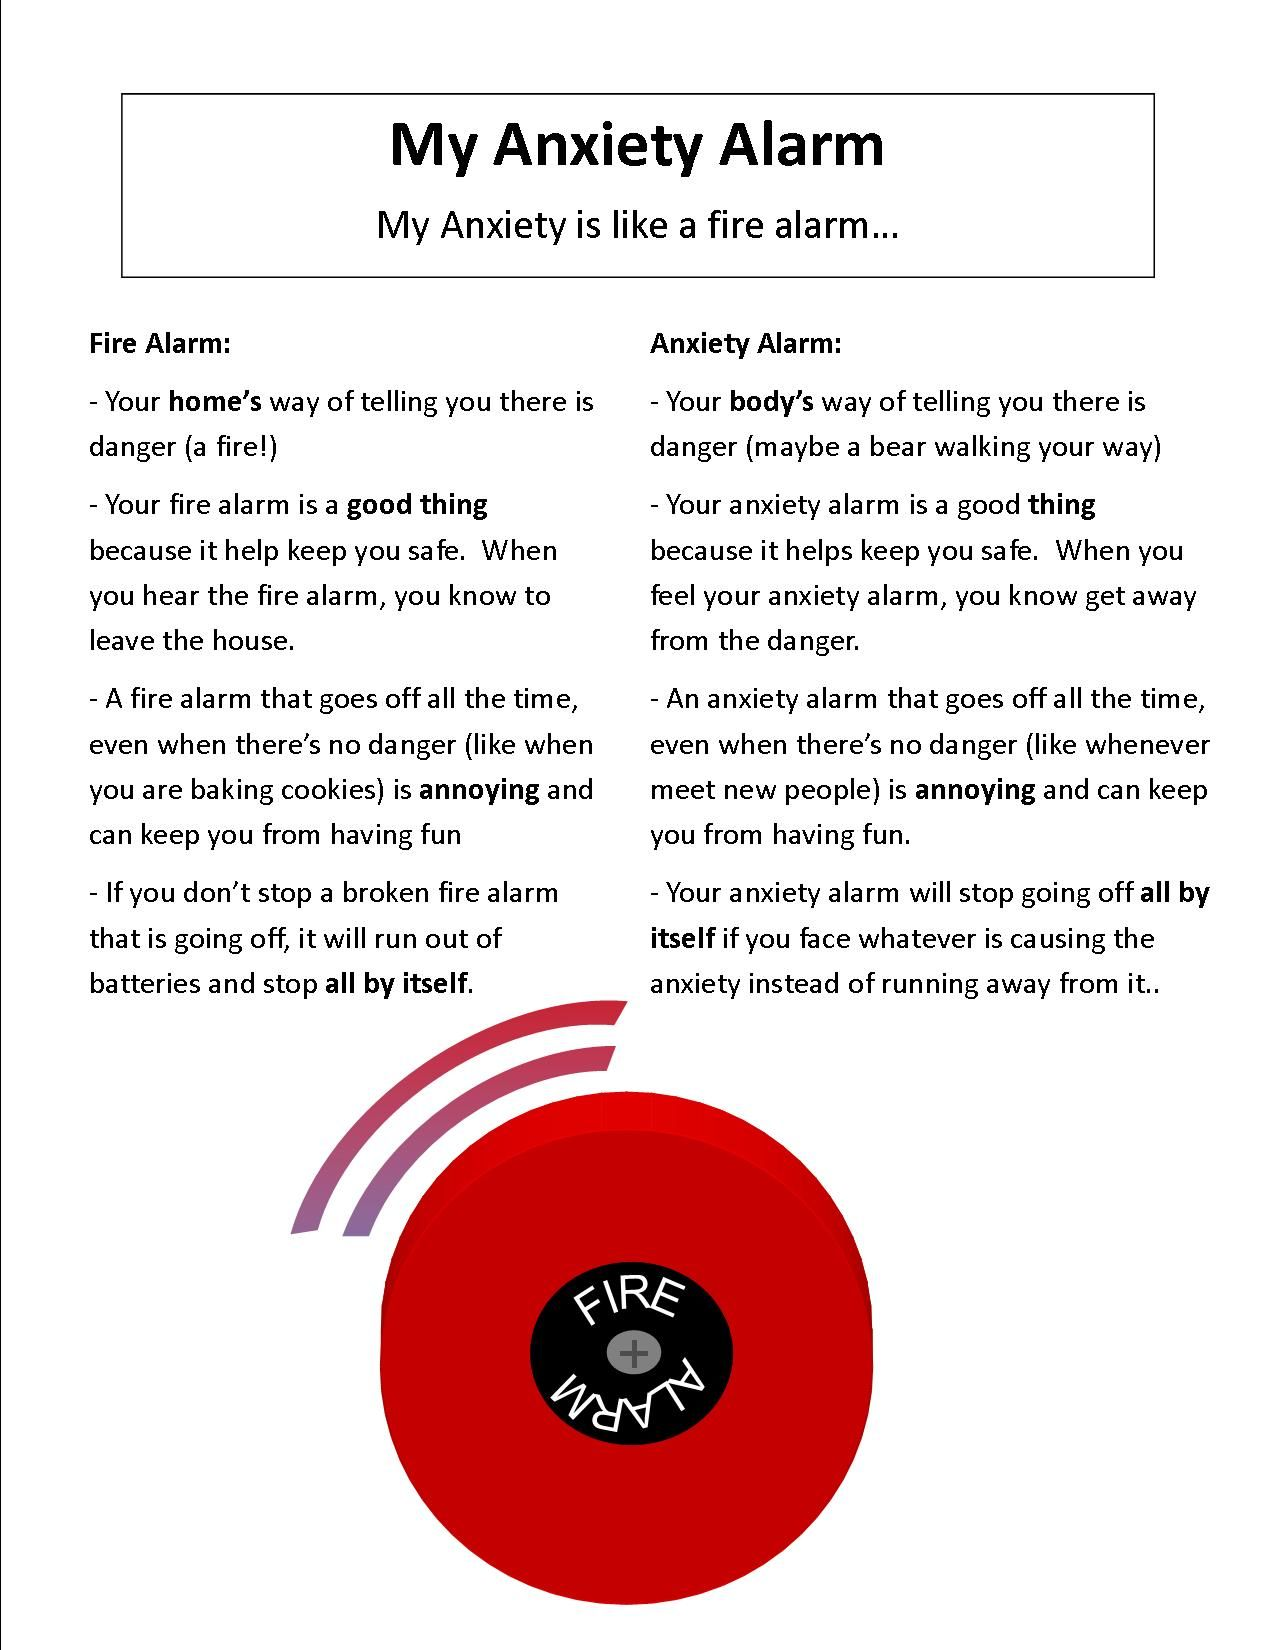 Worksheets Anxiety Worksheets For Children pin by angie simonton on anxiety in kids pinterest worksheets resultado de imagen para for kids